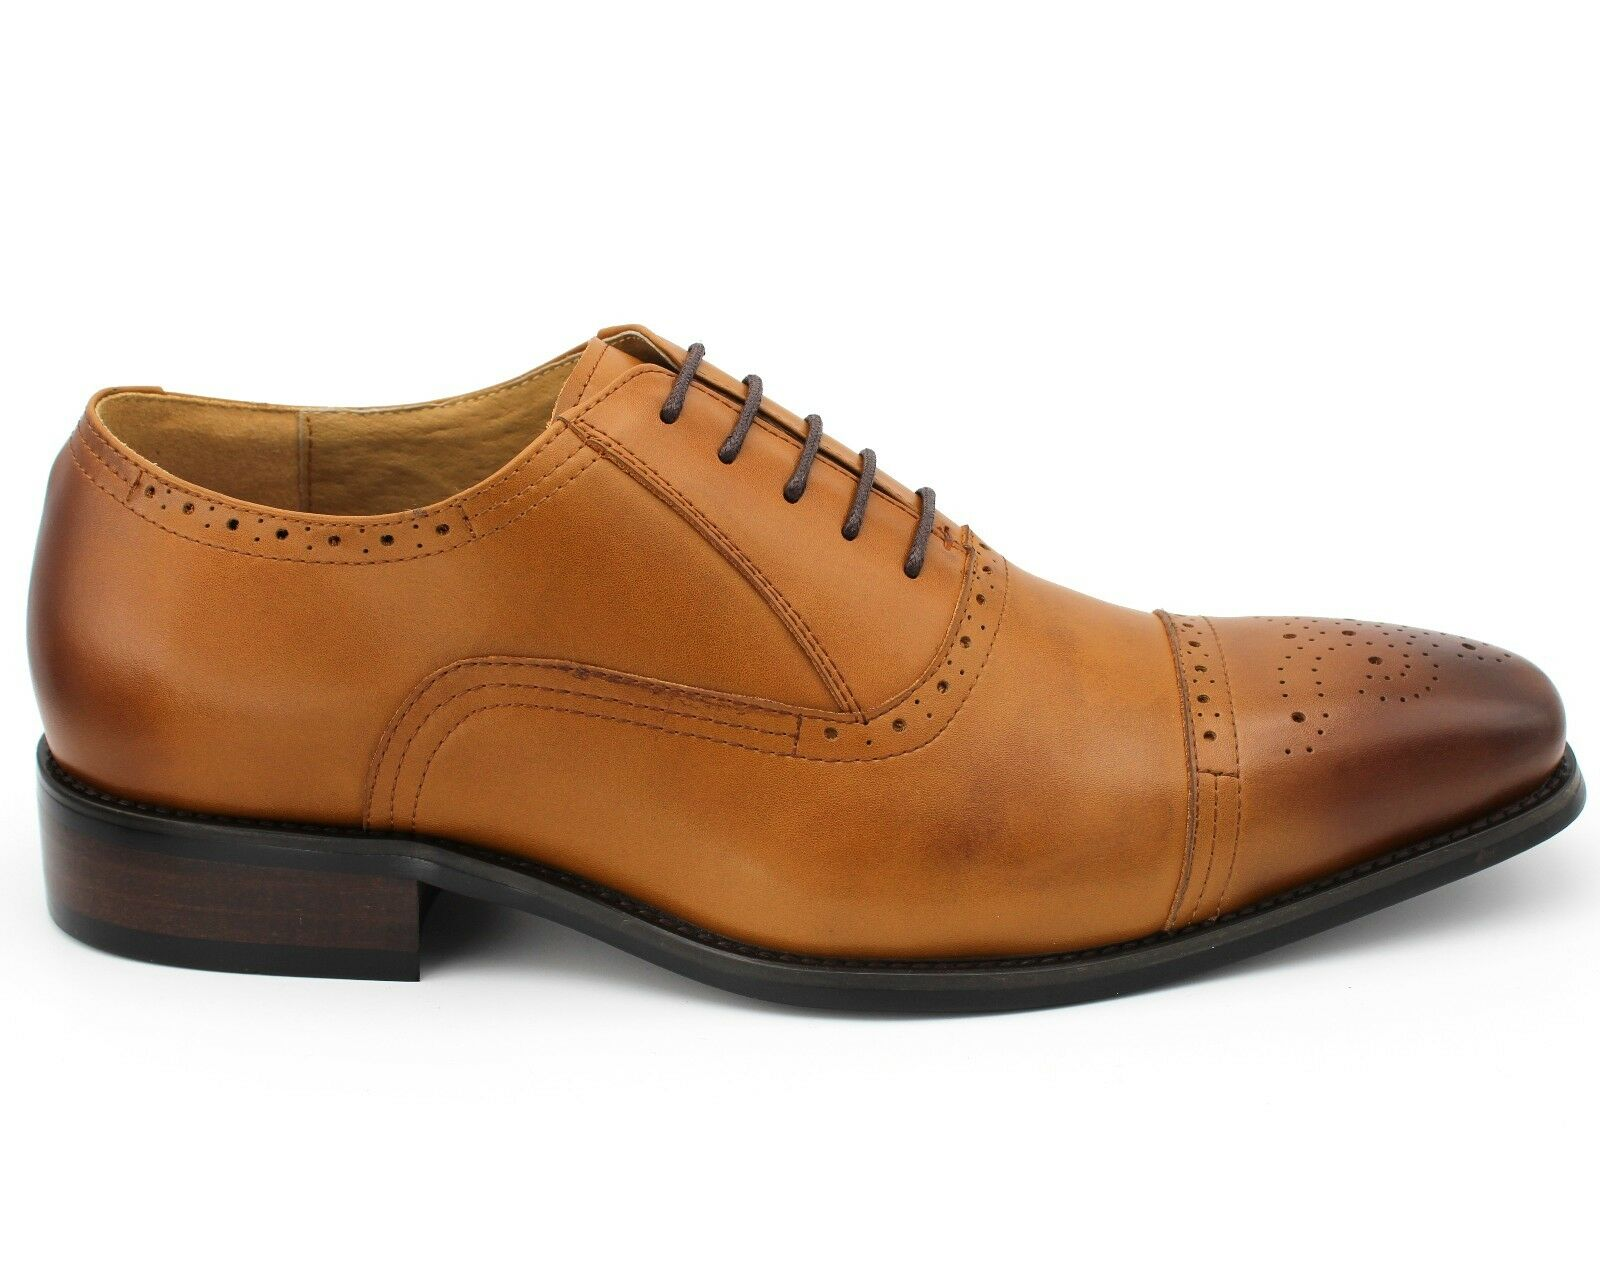 325 BRAND LEATHER NEW MEN'S TAN BROWN ANTIQUE LEATHER BRAND LACE UP SMART Schuhe UK 9 / EU 43 8881ff